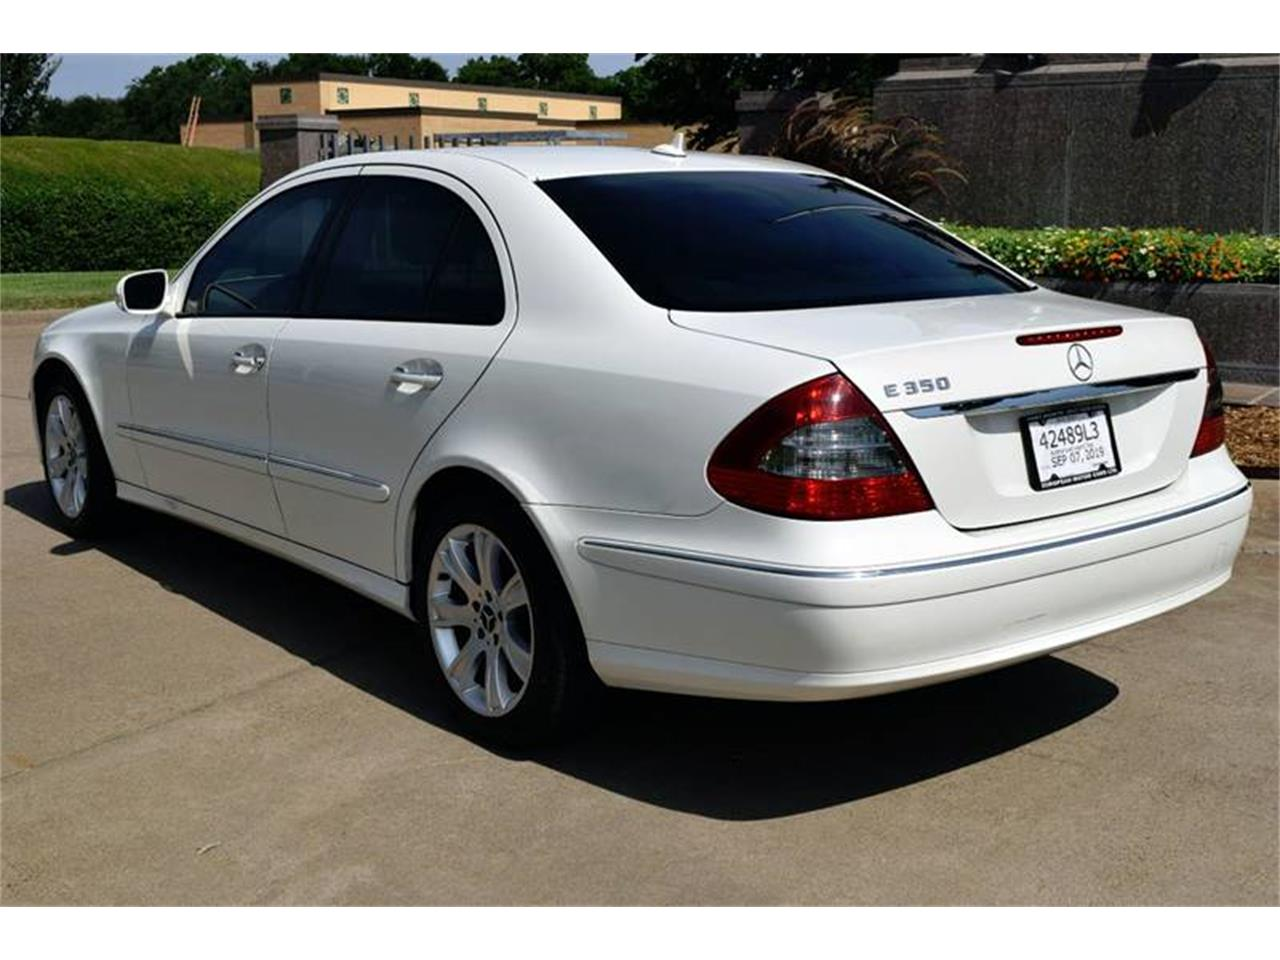 2009 Mercedes-Benz E-Class for sale in Fort Worth, TX – photo 5